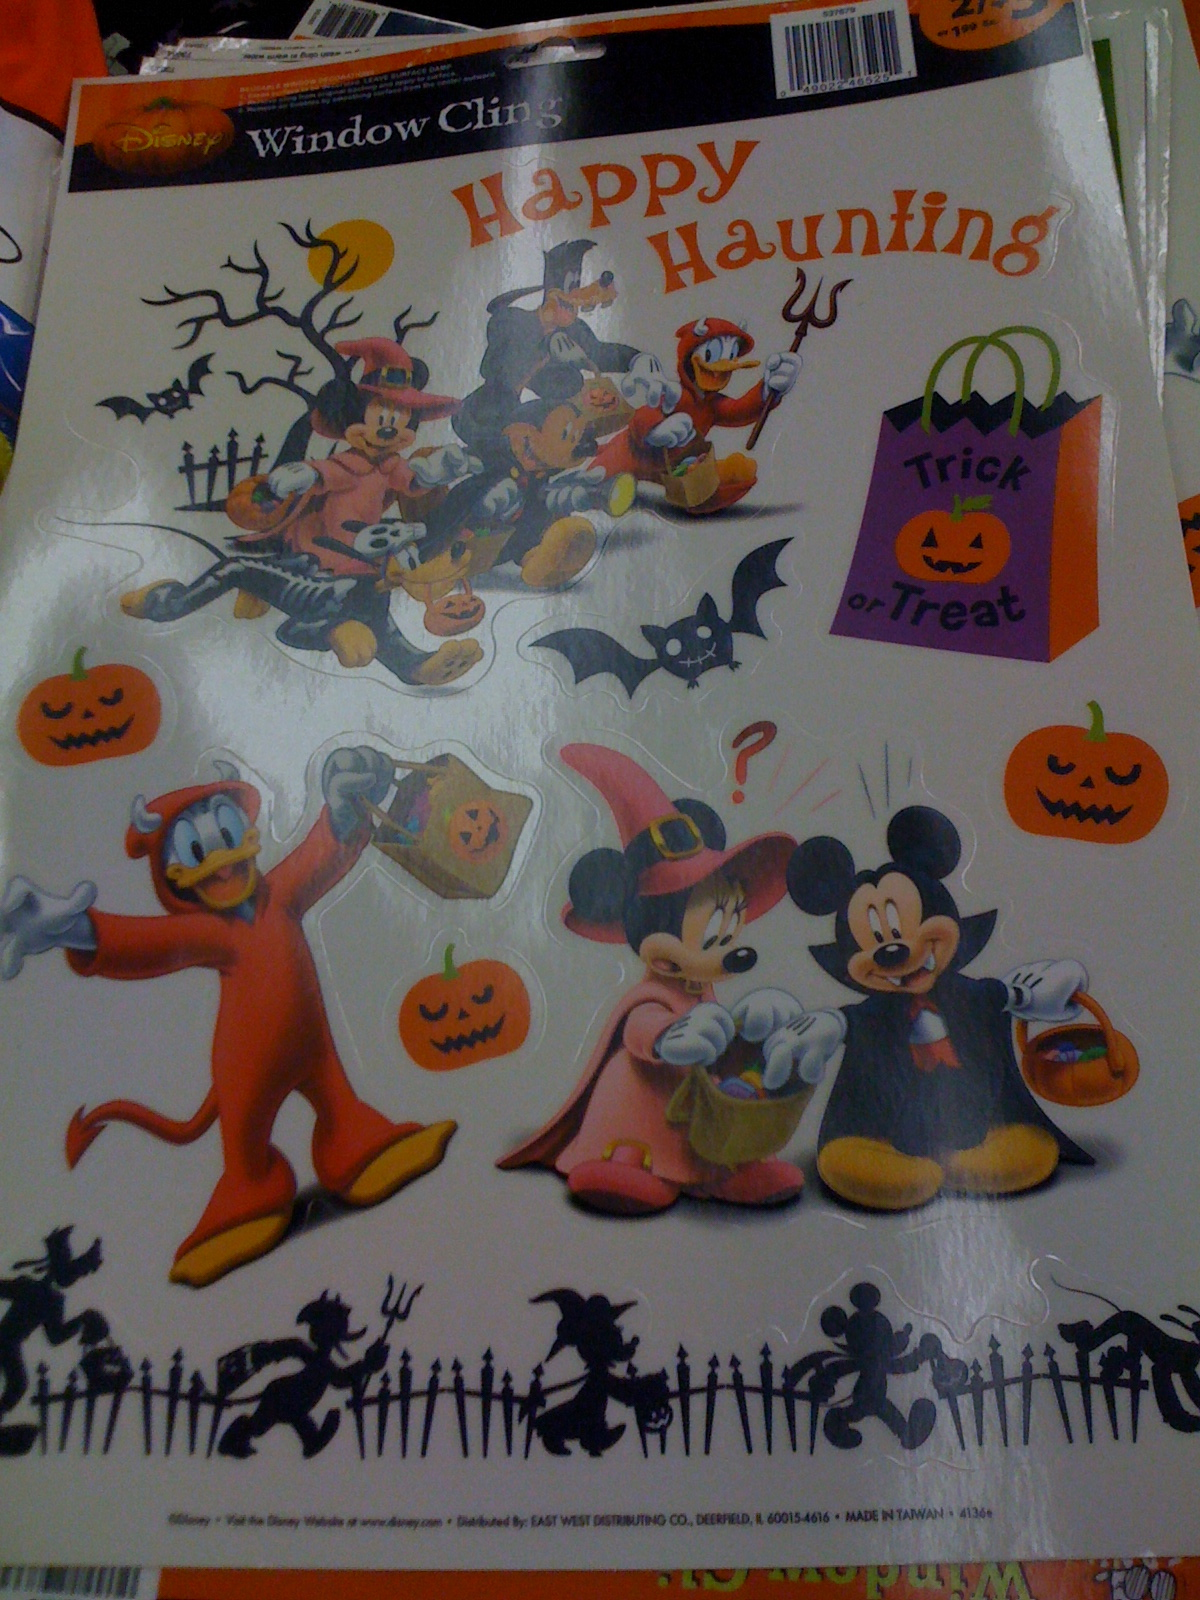 if you have a trip planned to walt disney world or disneyland before halloween i suggest you head to walgreens to pick up a few extra disney surprises - Walgreens Halloween Decorations